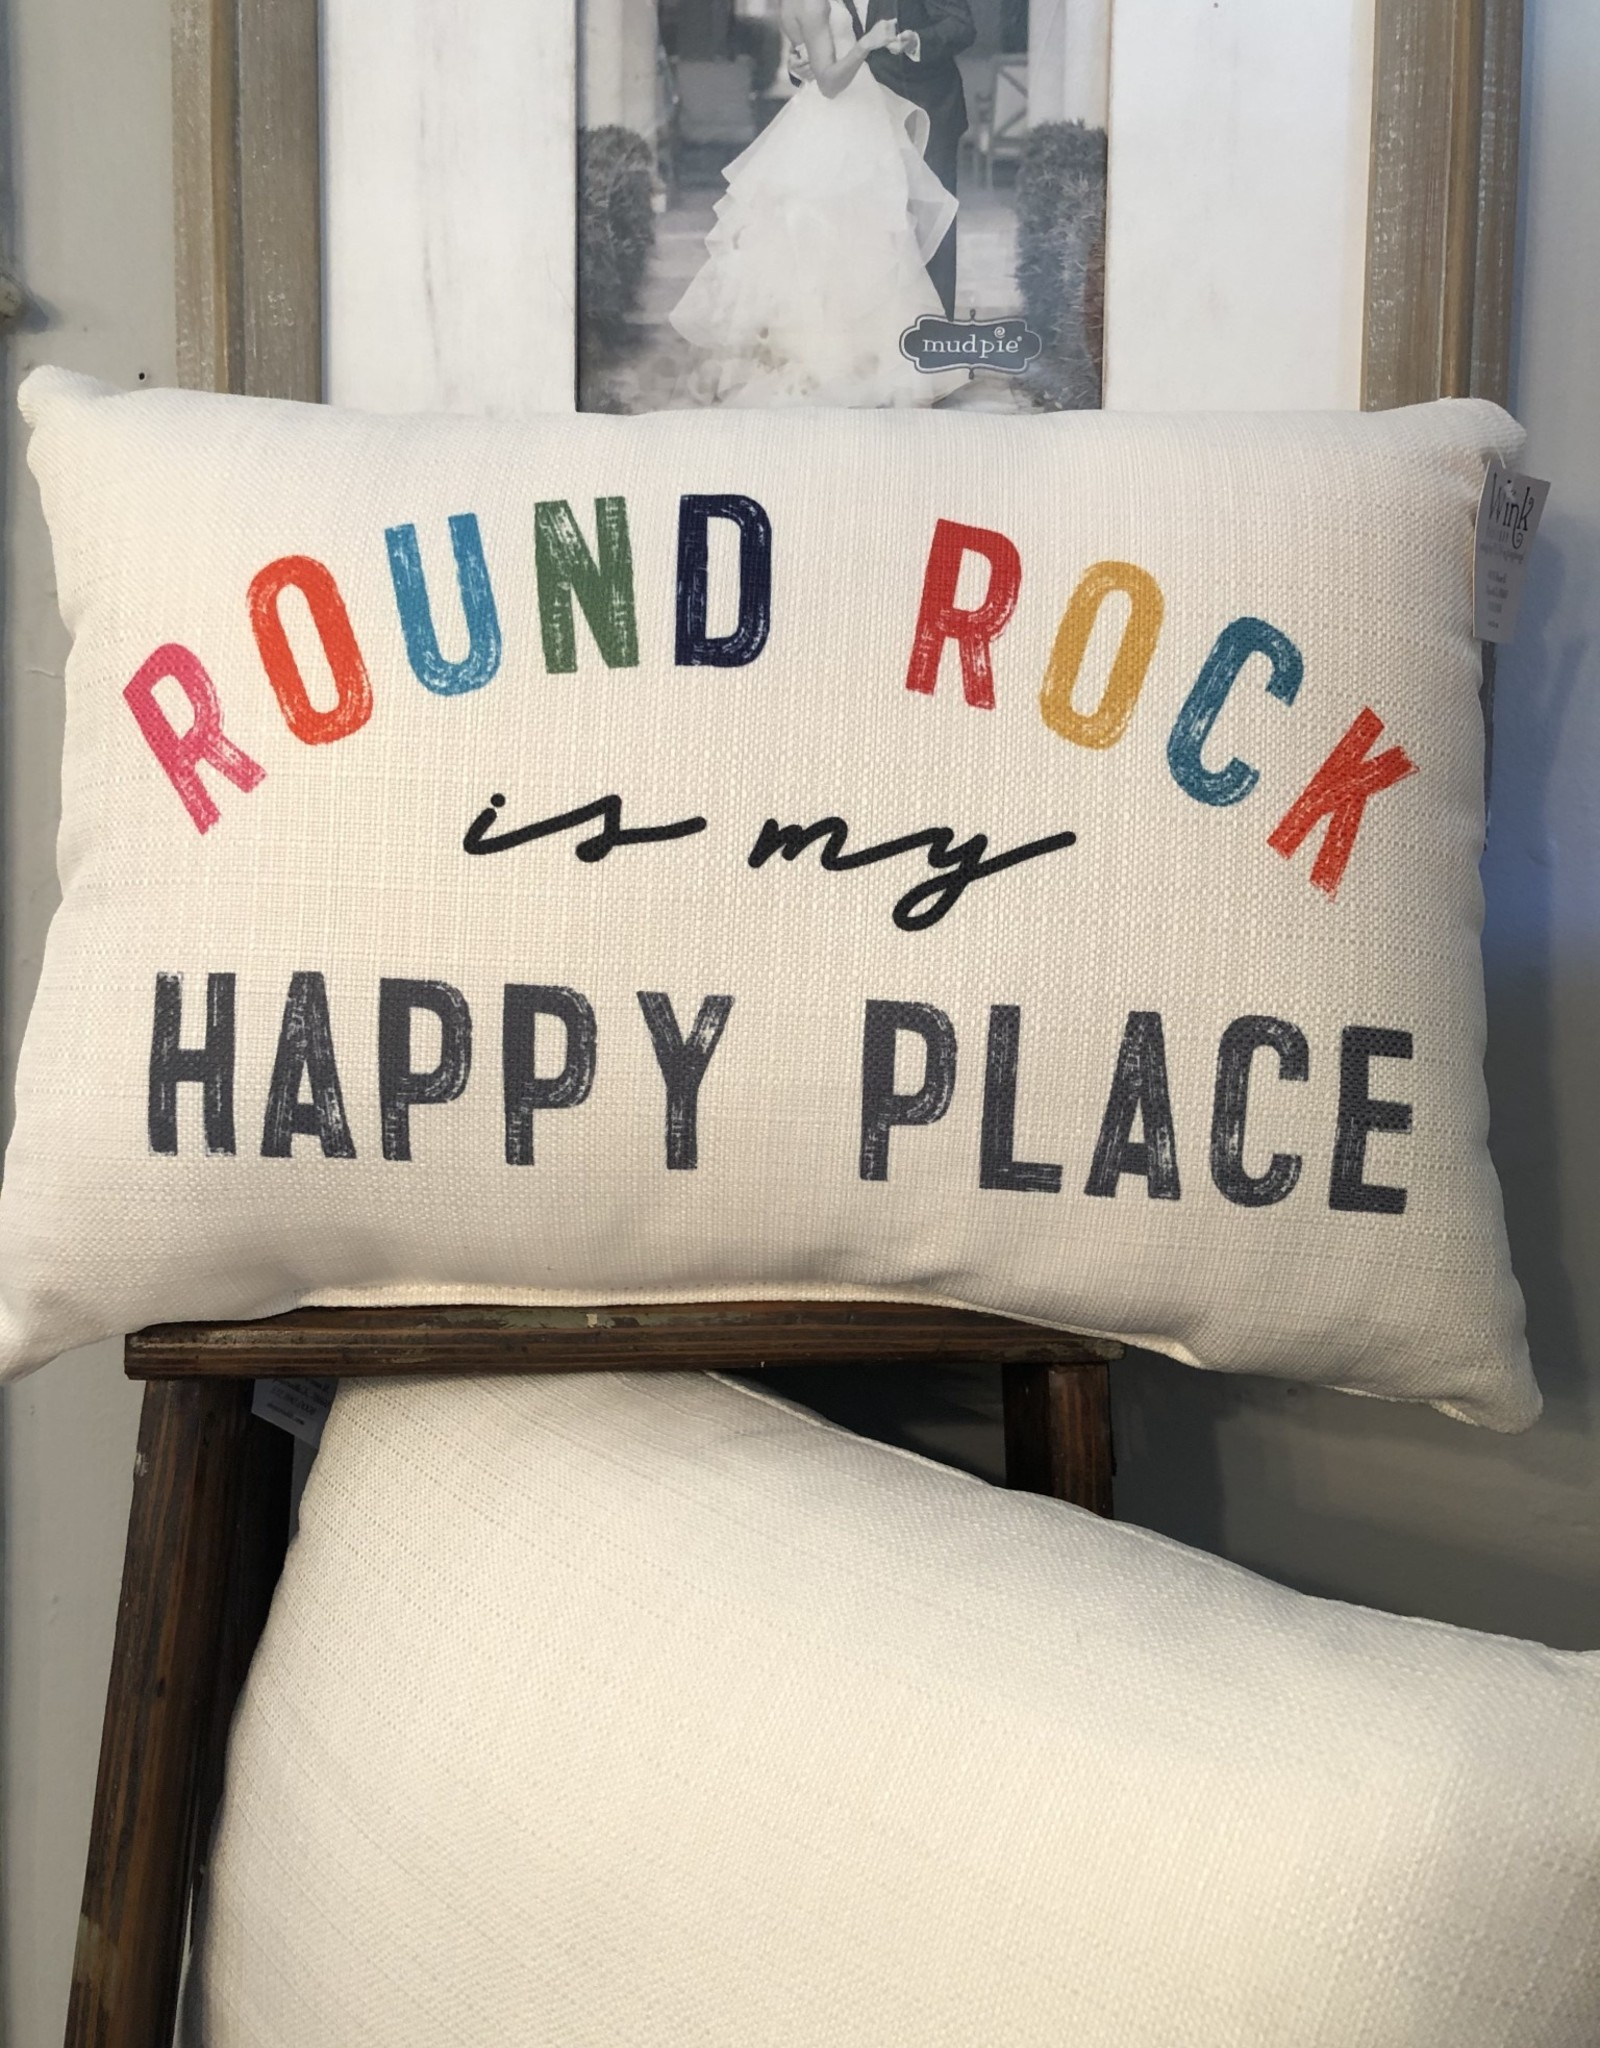 Wink Round Rock Is My Happy Place